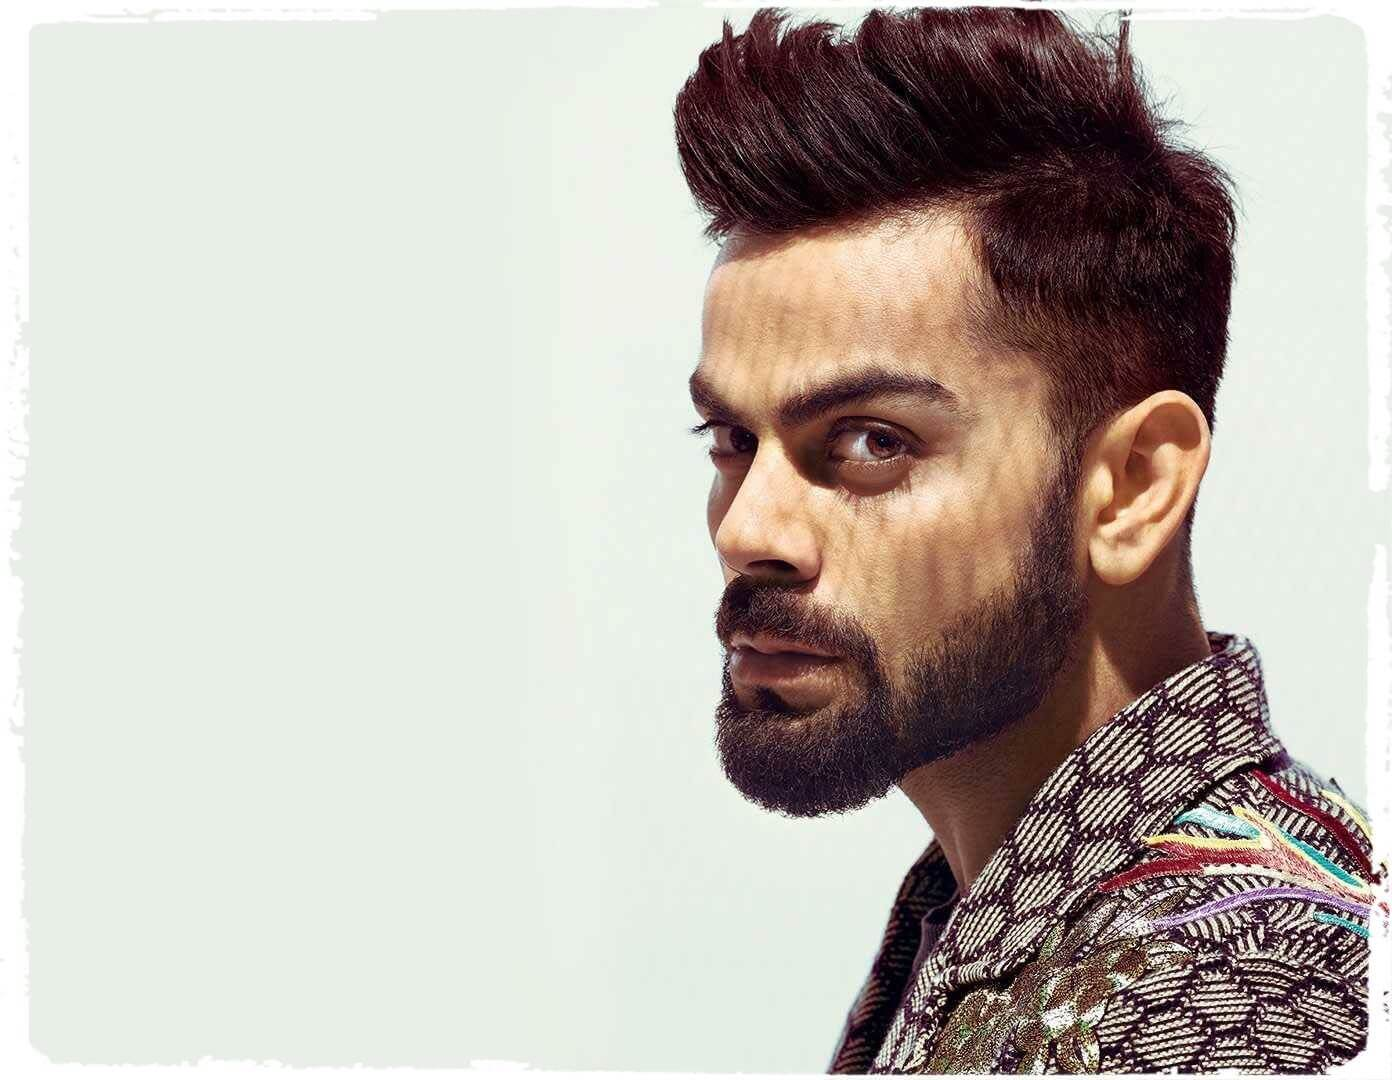 15 Virat Kohli Hairstyles To Get In 2018 11th Is New Live Enhanced